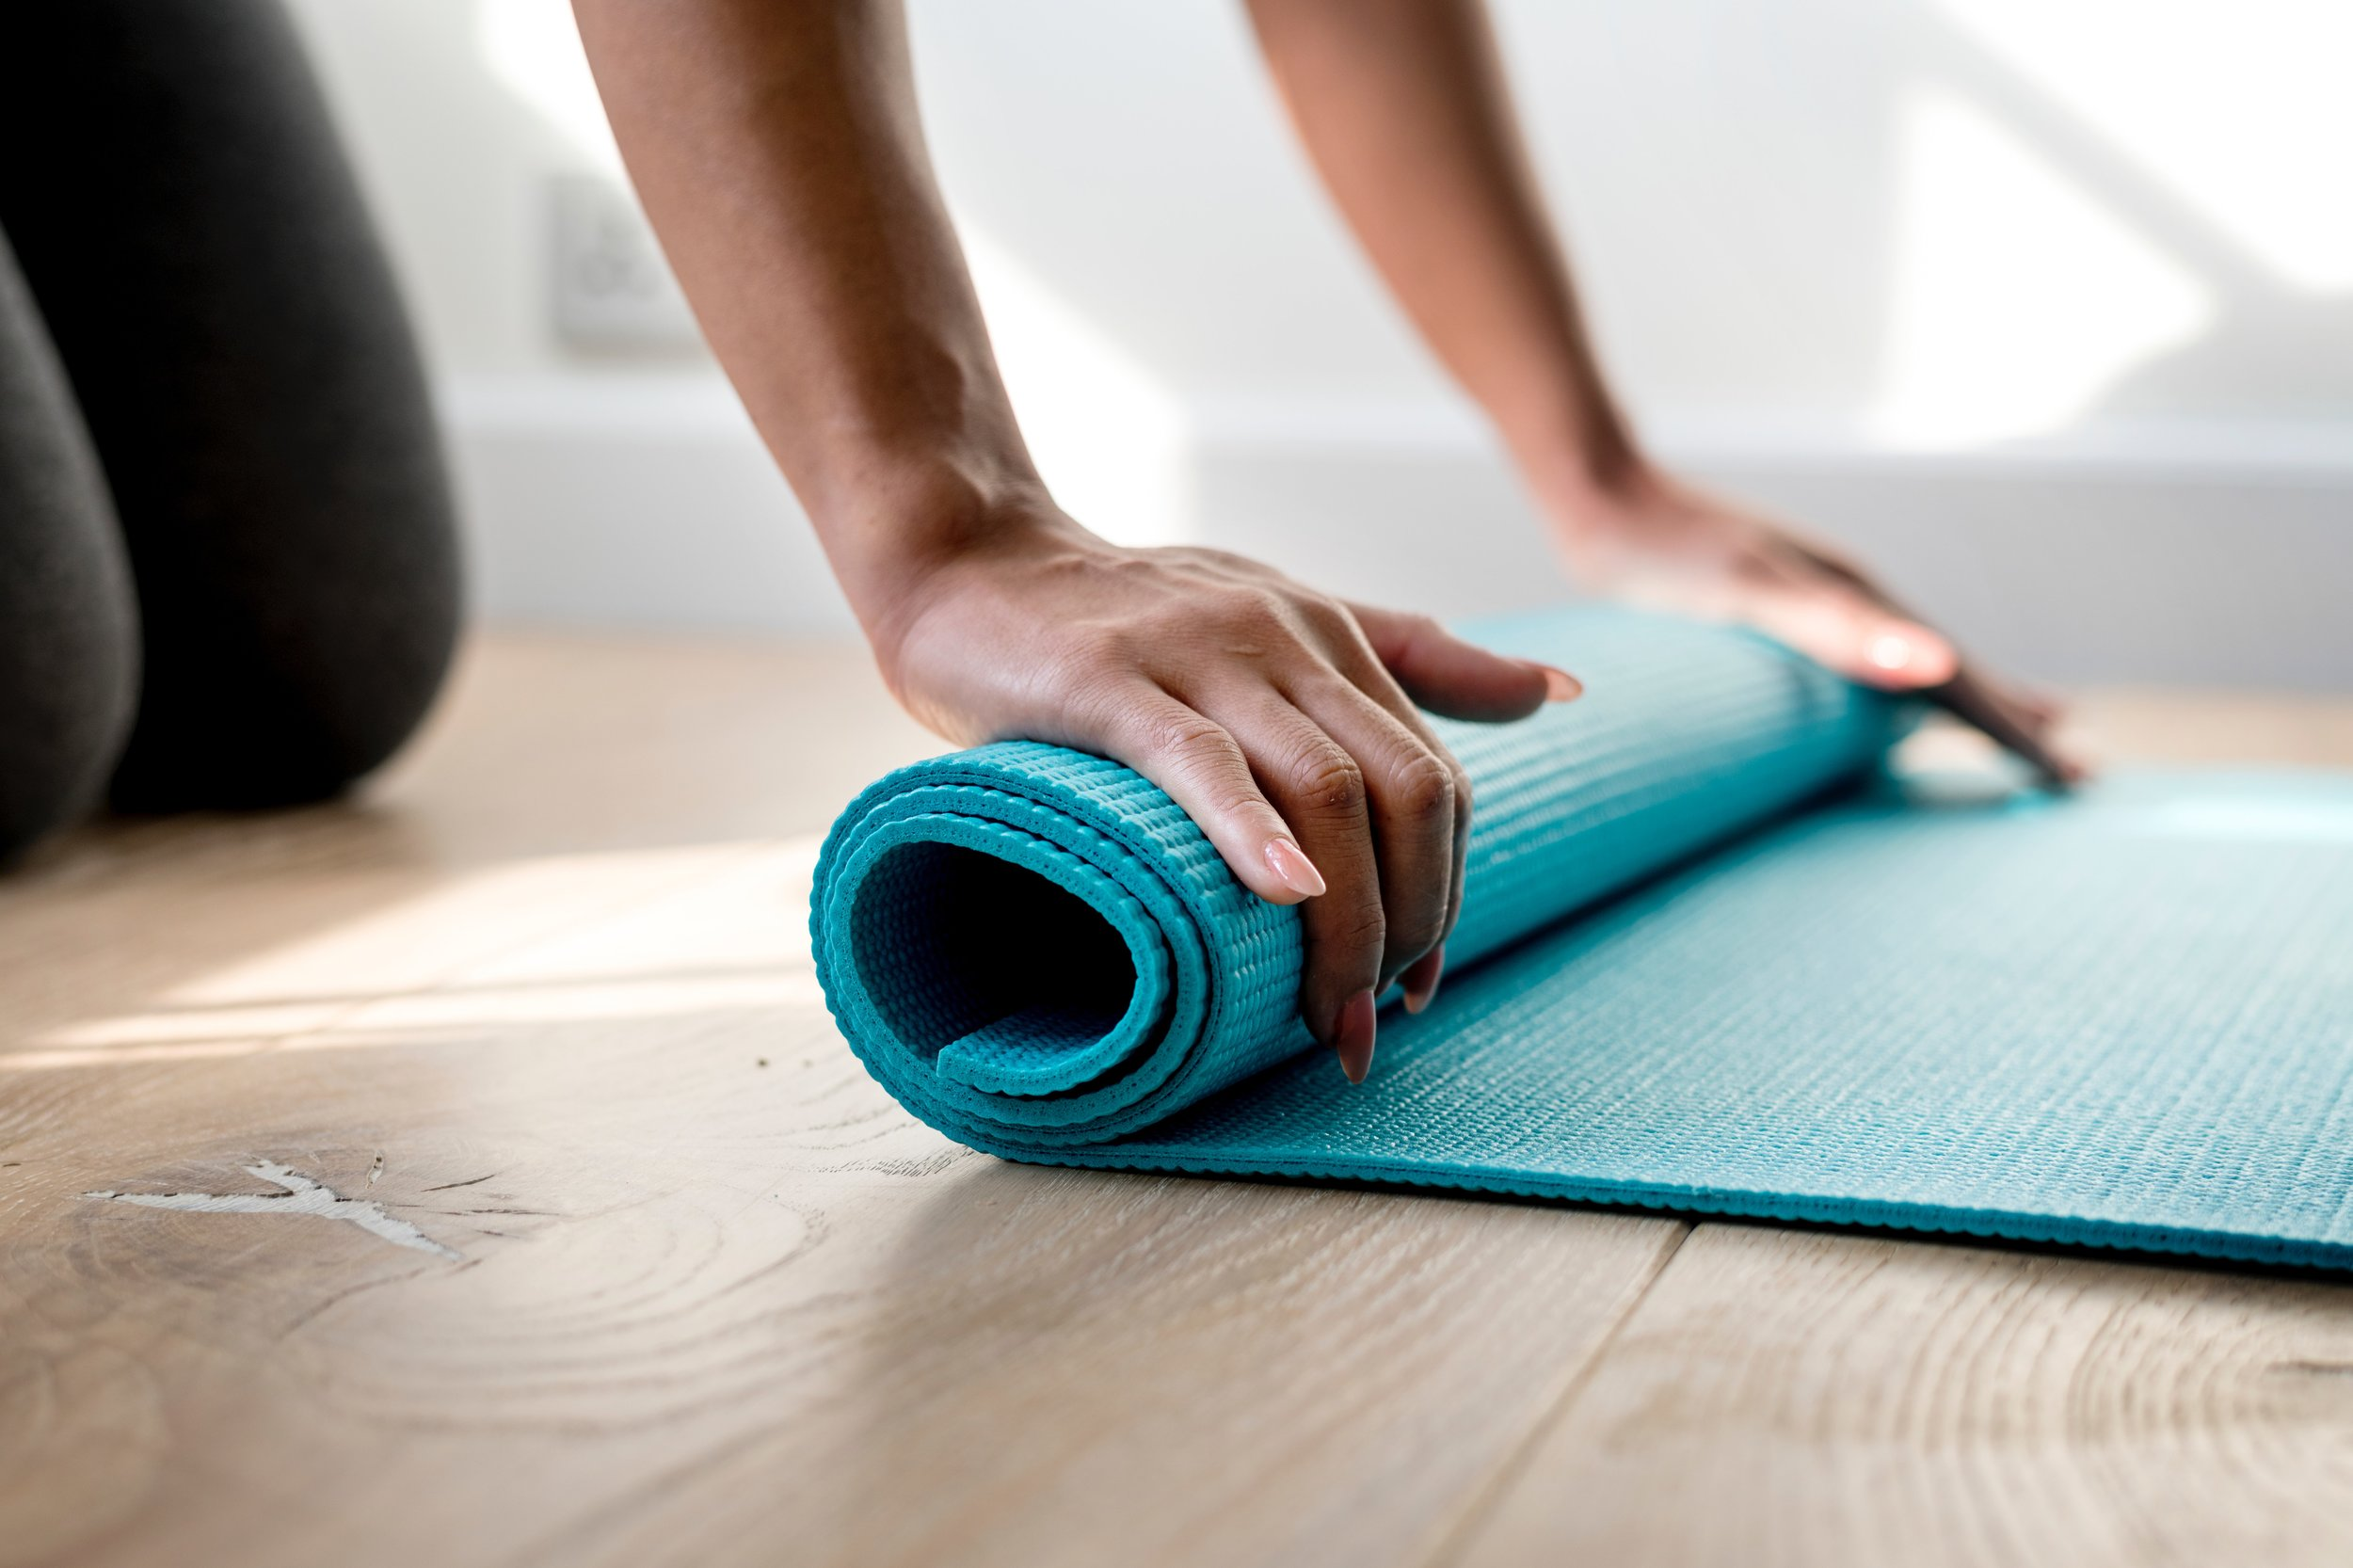 pilates - Bring your mat and join Alan for floor mat pilates to improve your flexibility and strength. All levels are welcome.Classes TBA